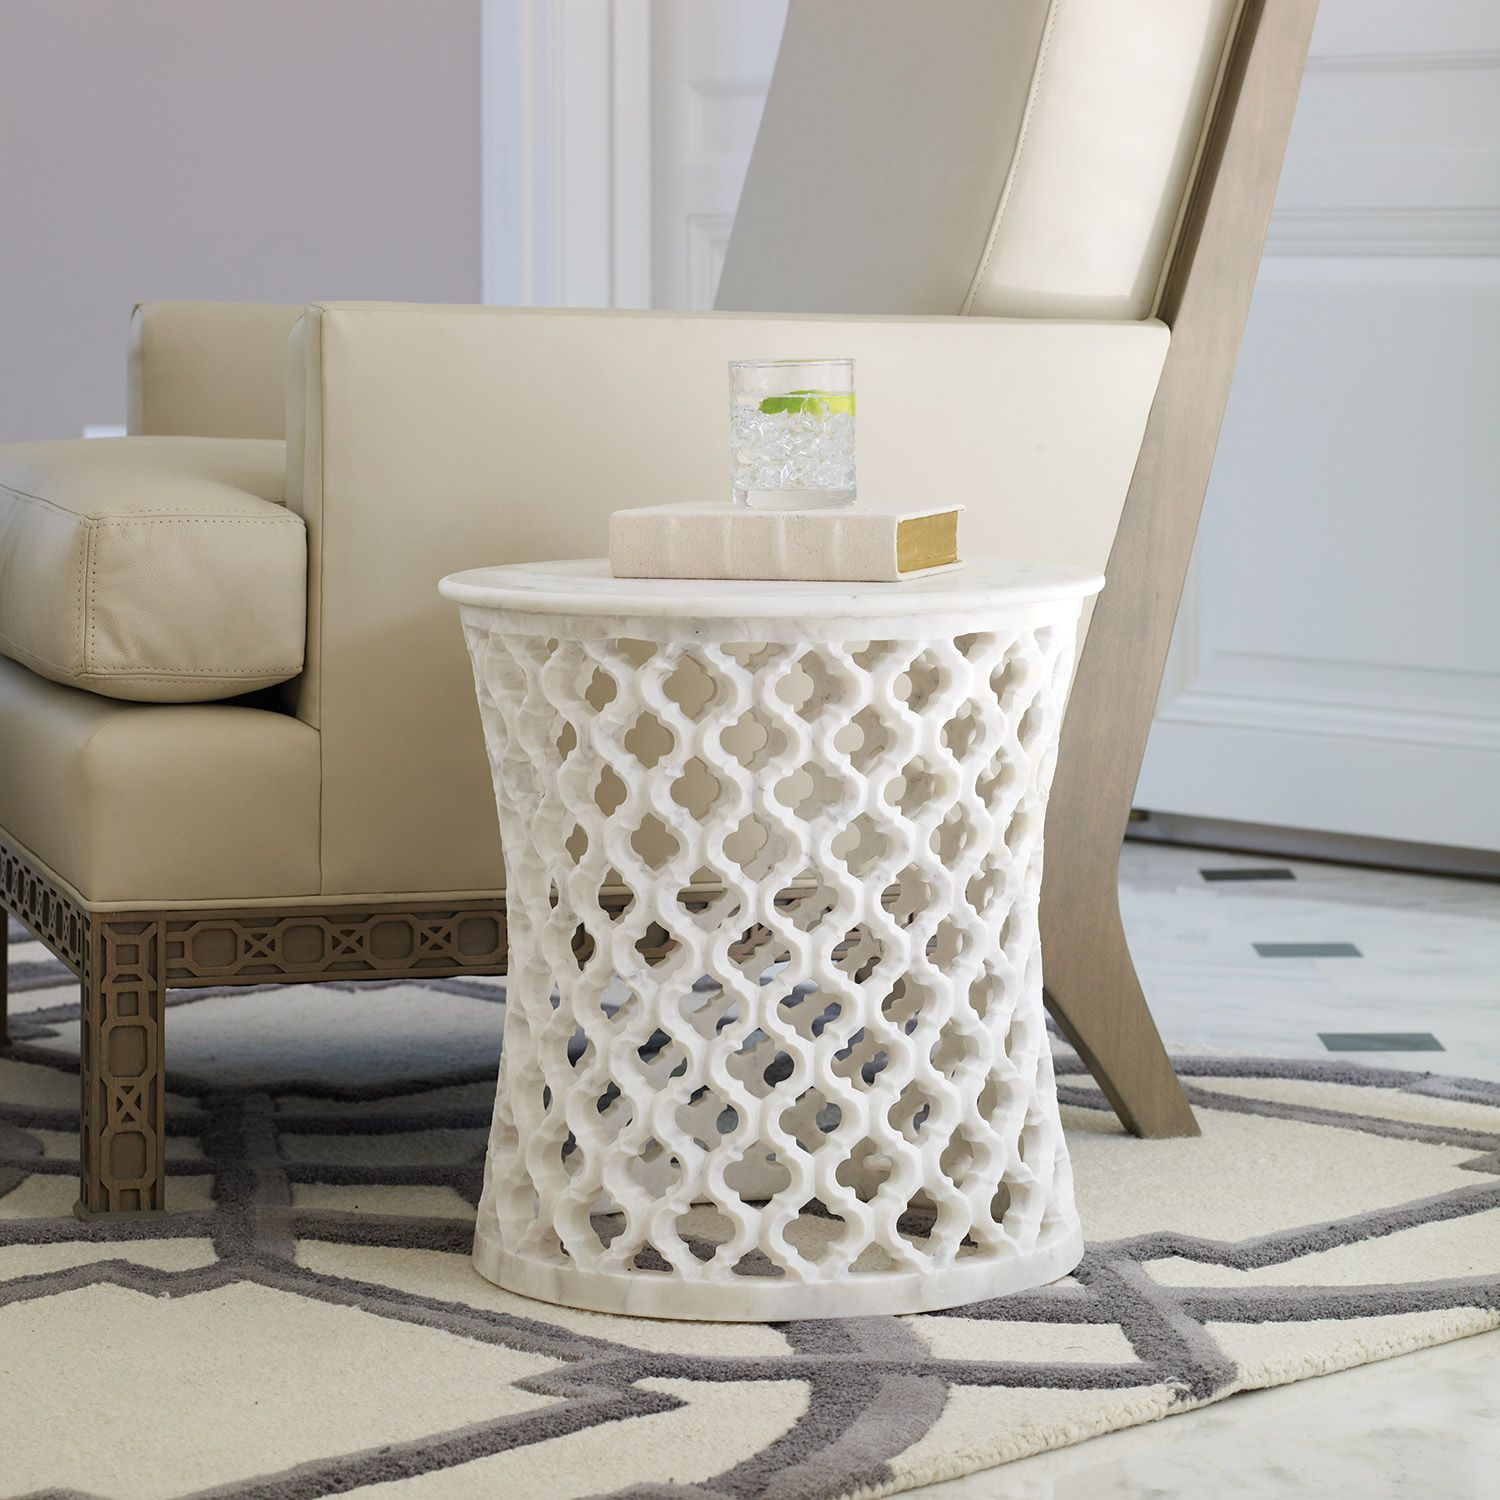 Attirant Global Views Marble Arabesque Side Table: A Hand Carved Ogee Pattern Forms  The Moroccan Inspired Base Of Global Viewsu0027 Arabesque Side Table.